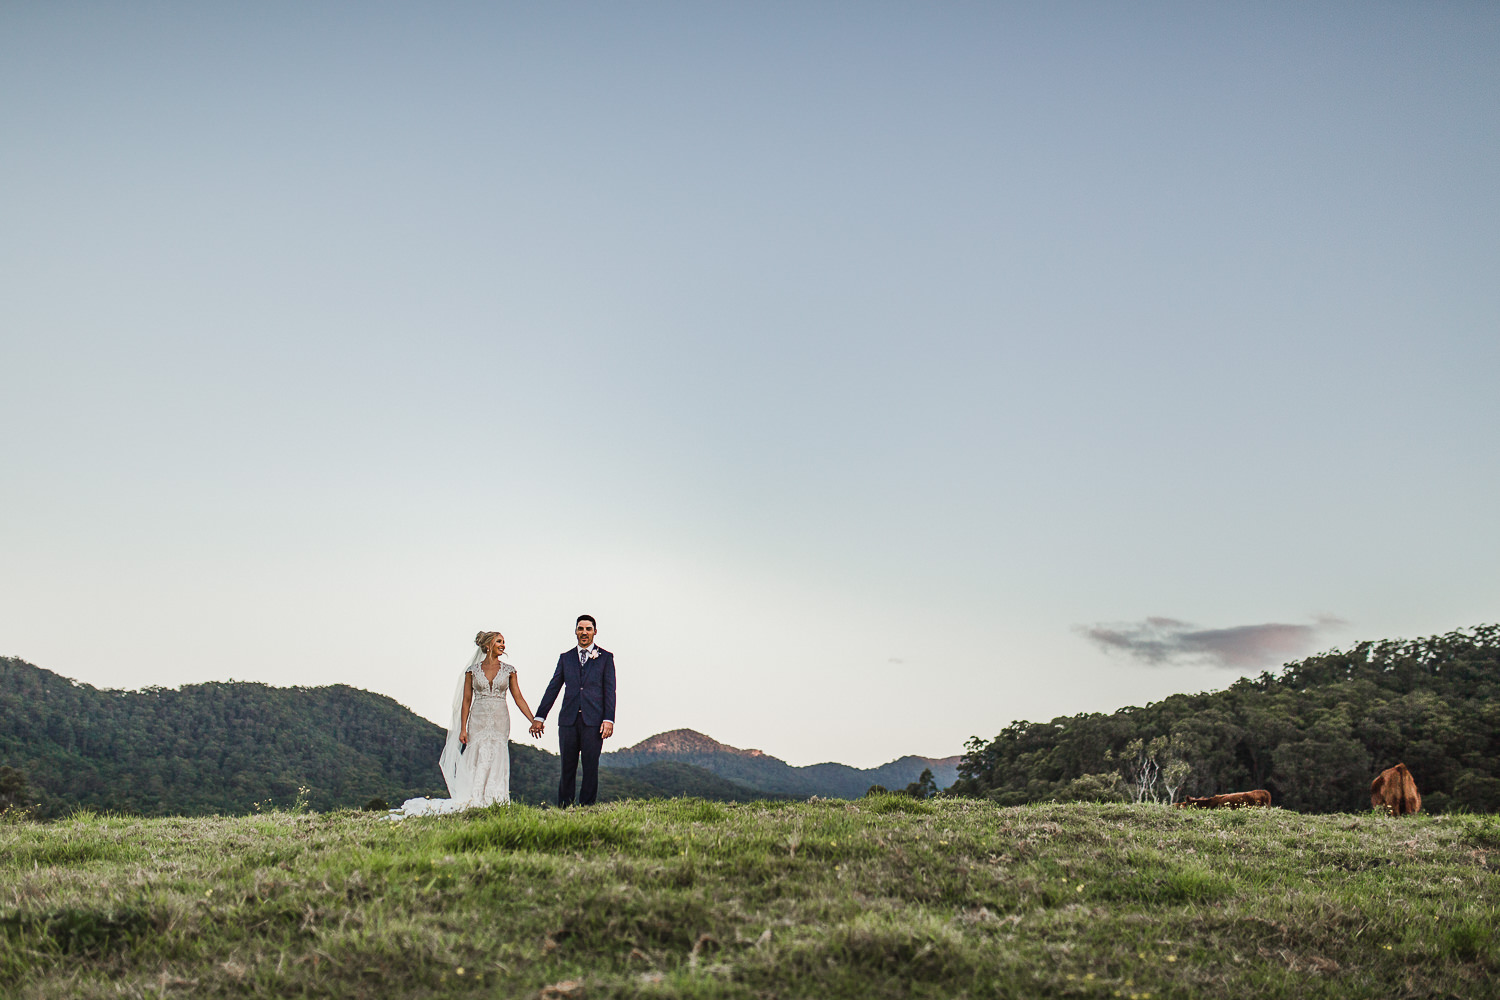 True-North-Photography-Cowbell-Creek-Gold-Coast-wedding-photographer-78.jpg